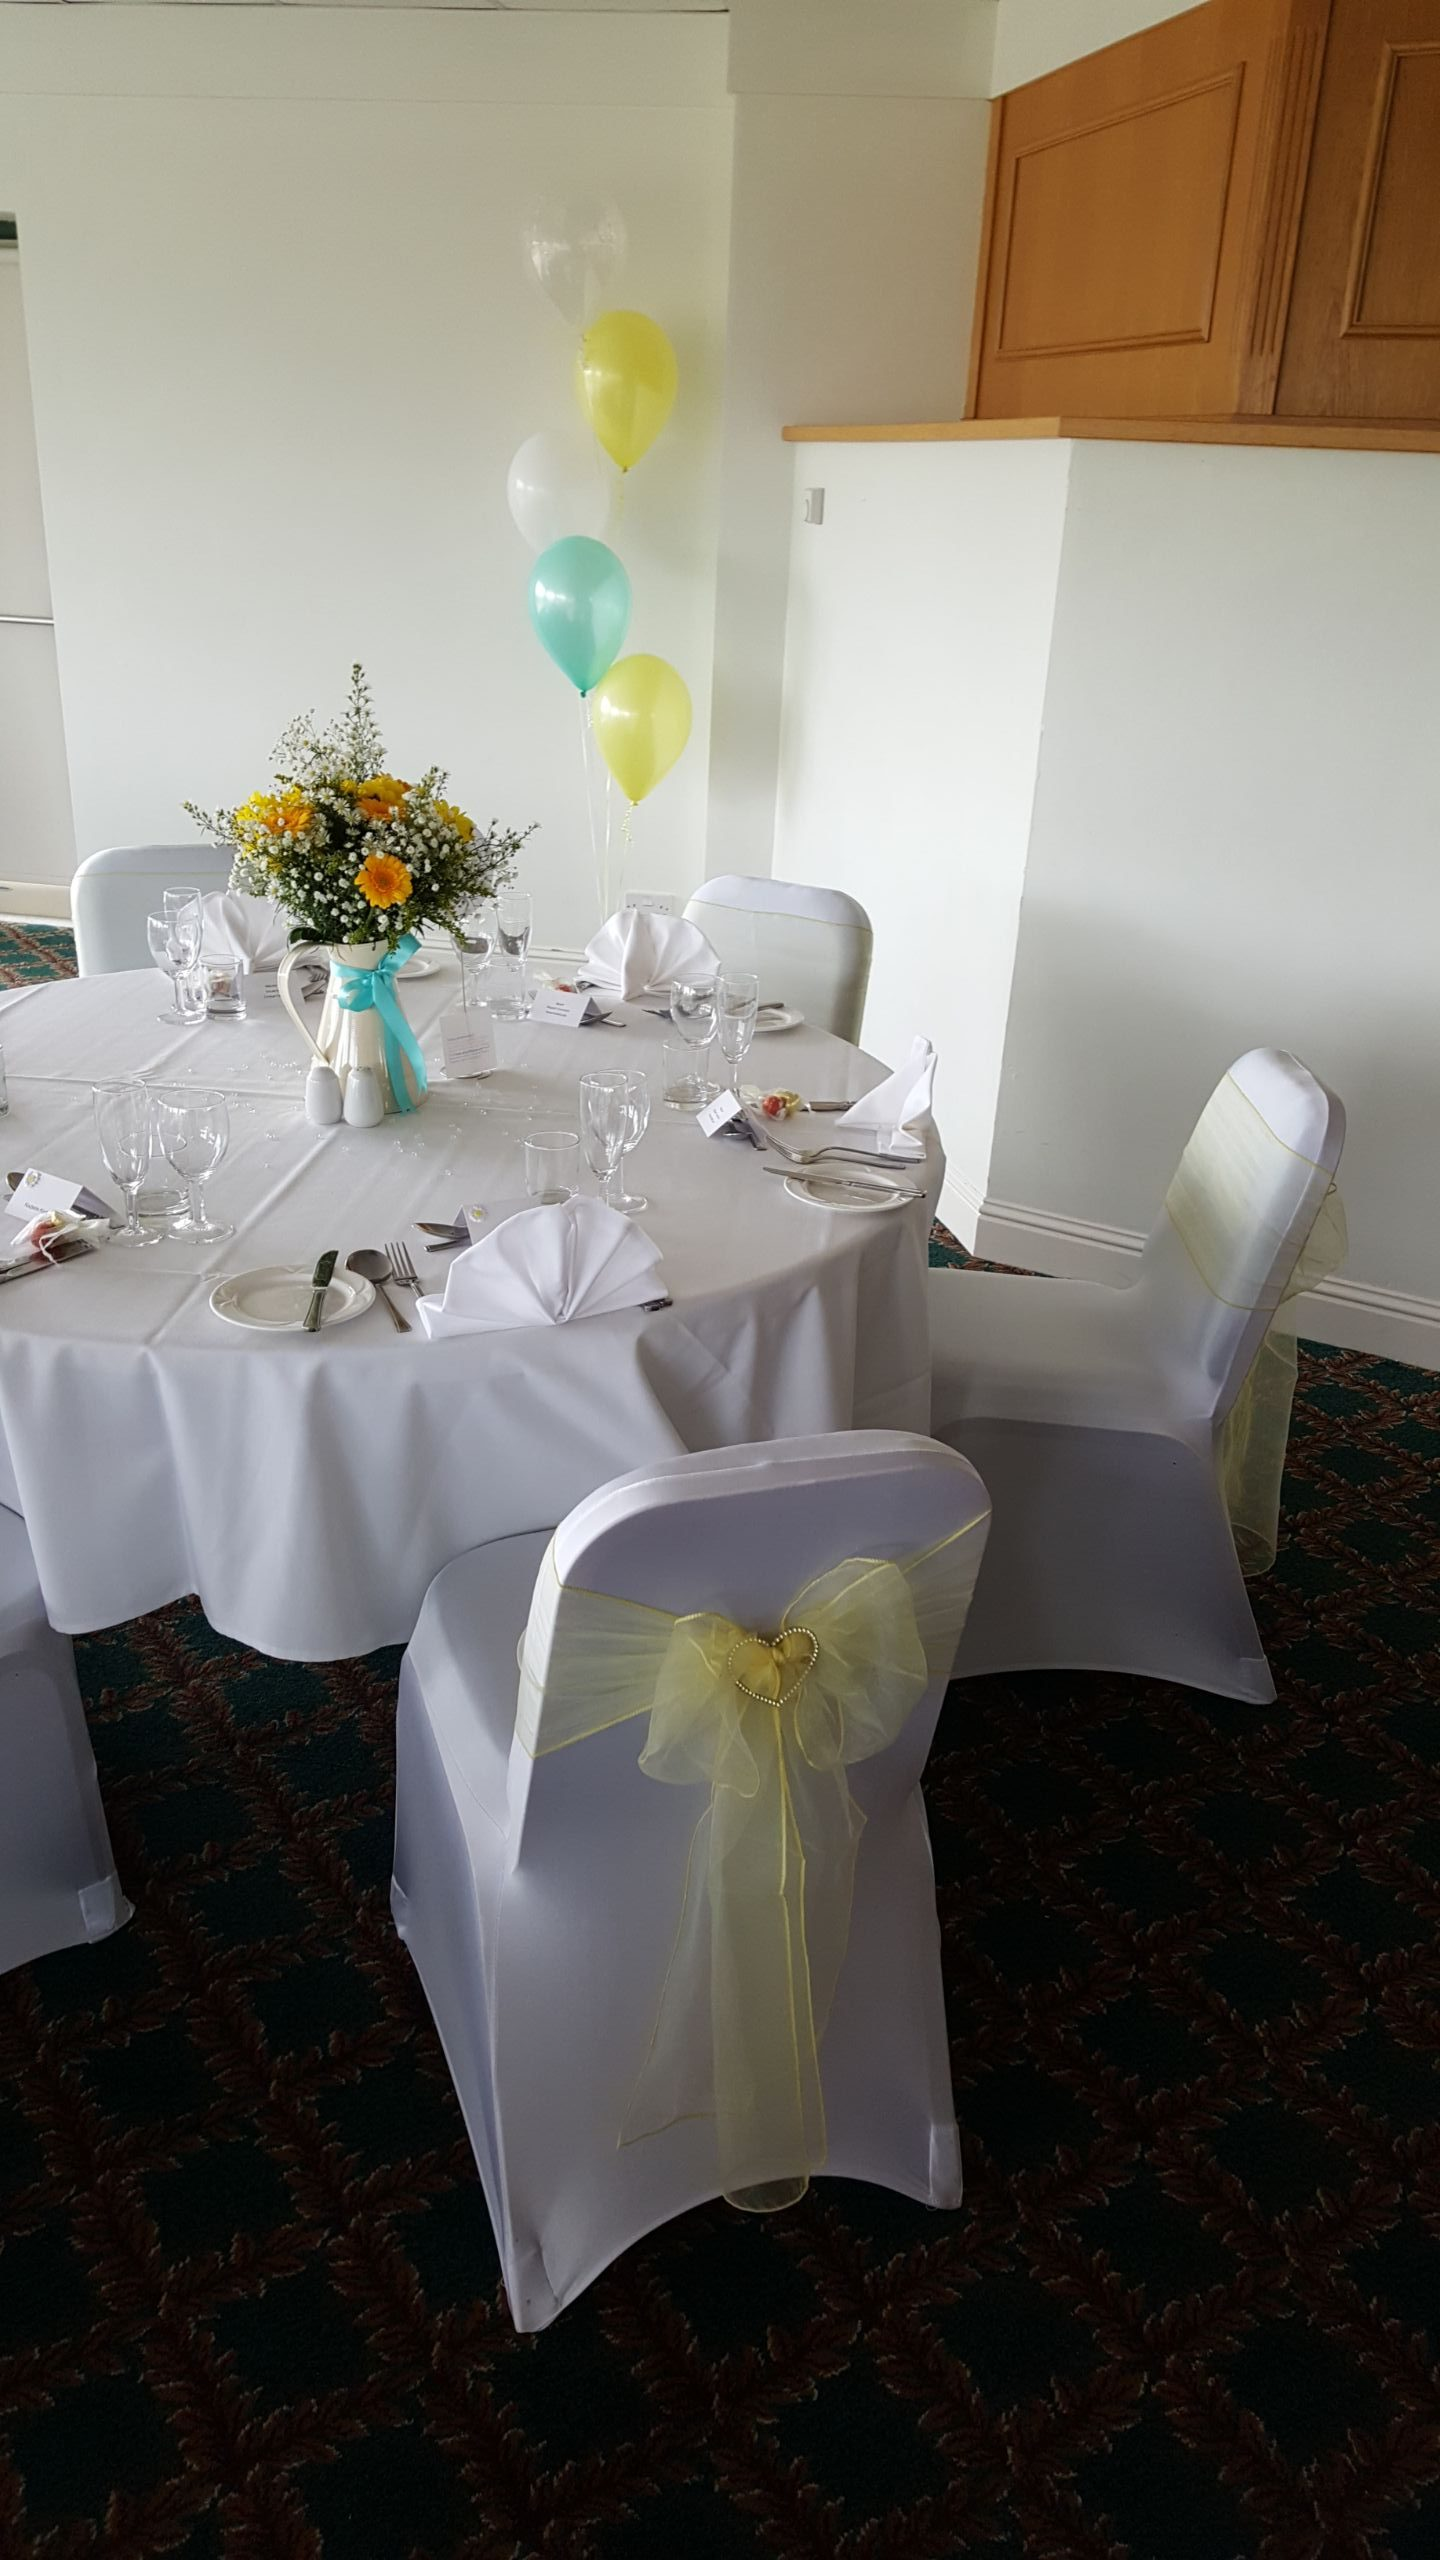 Pale Yellow and Blue Themed Decorations